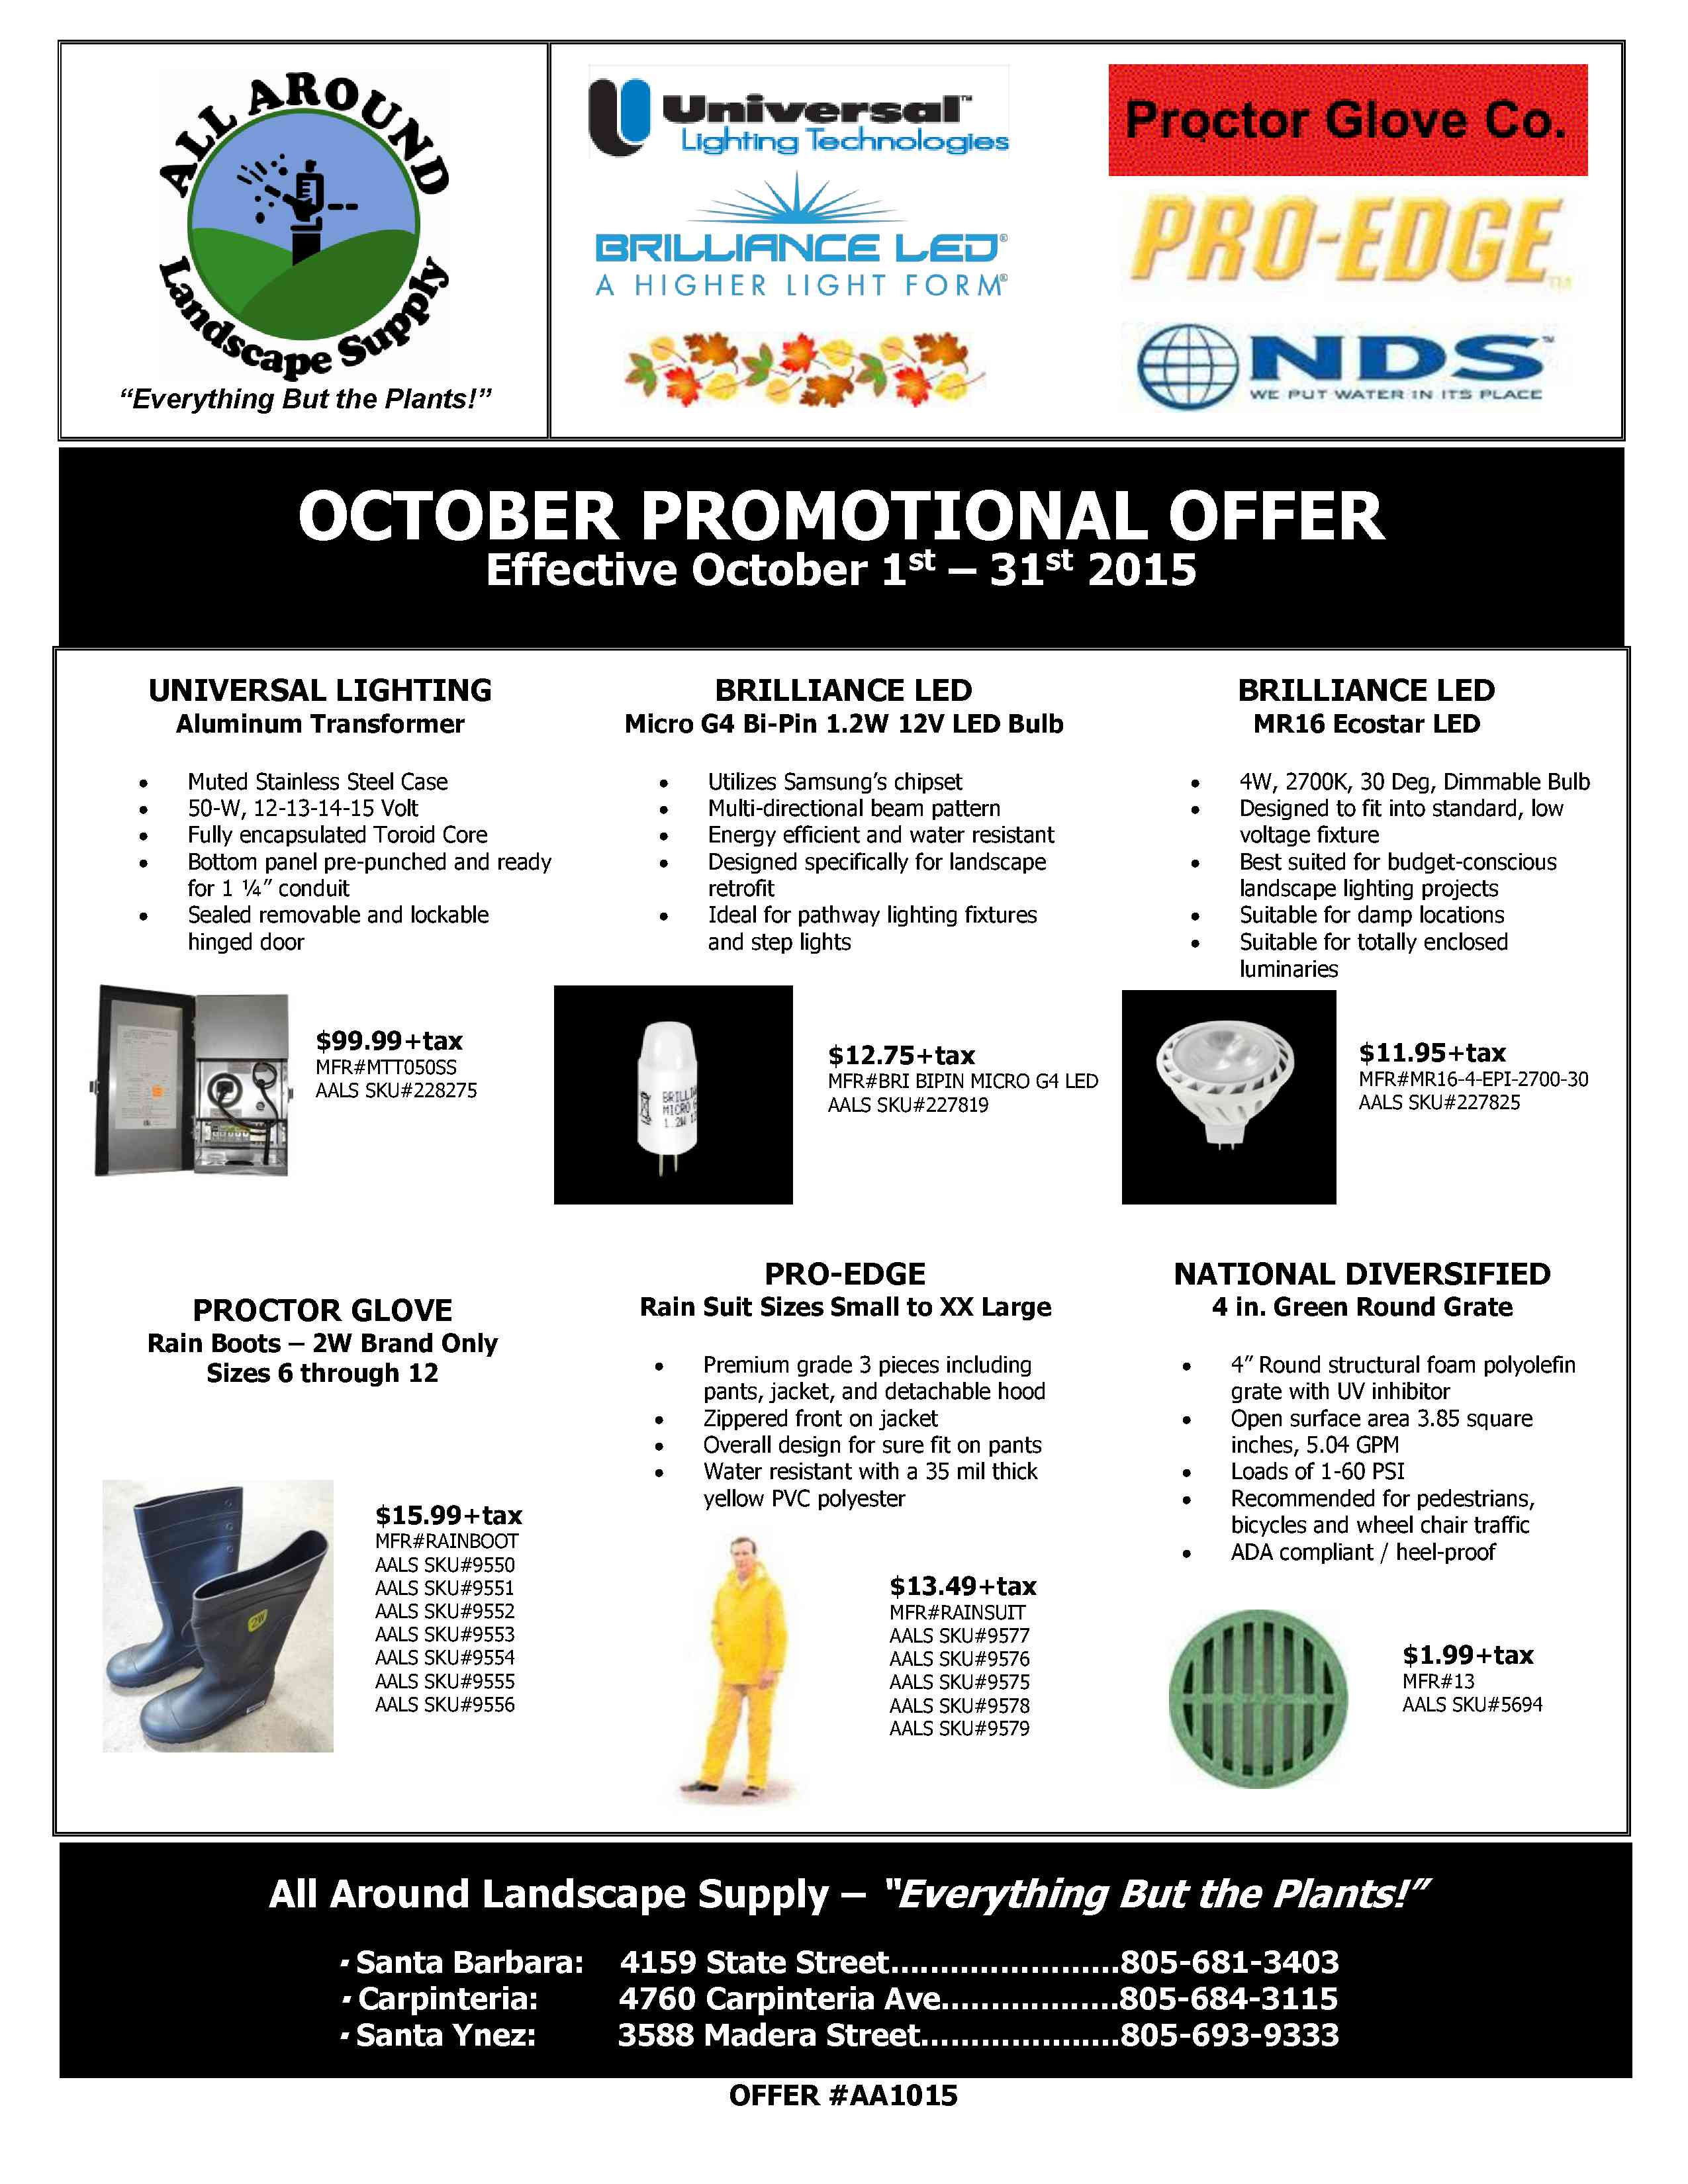 All Around Landscape October 2015 Promotions